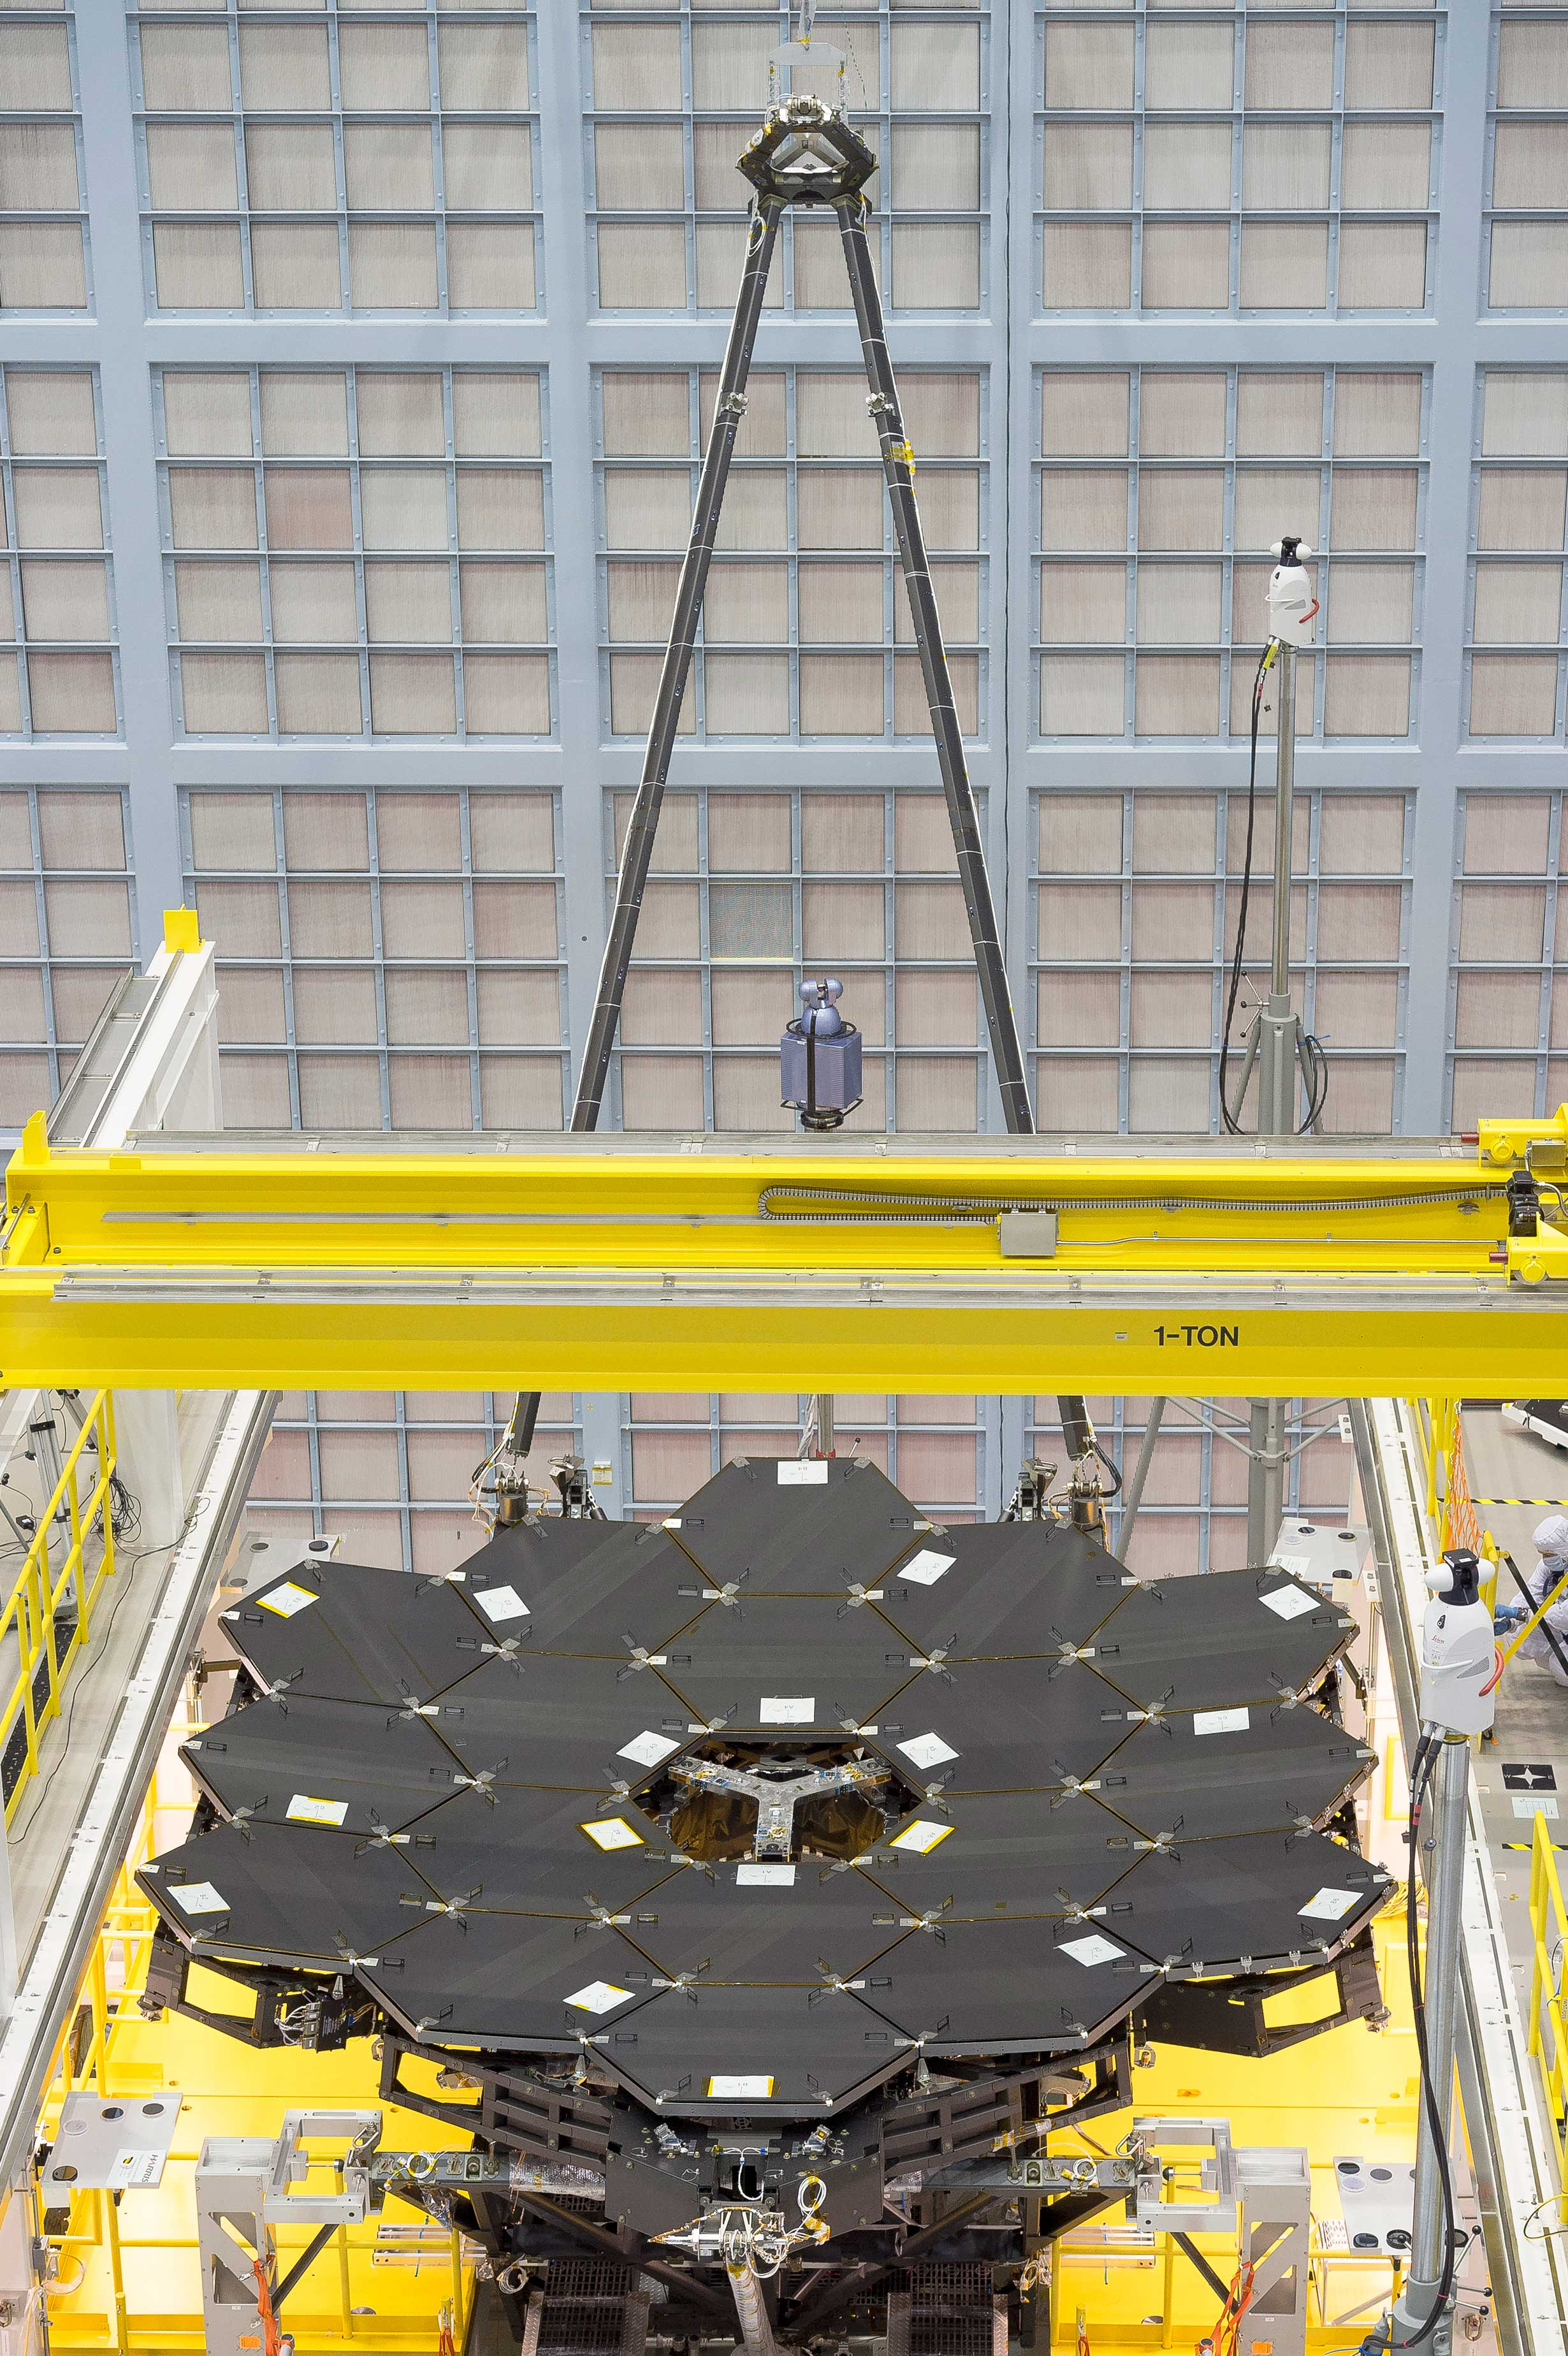 In this rare view, the James Webb Space Telescope's 18 mirrors are seen fully installed on the James Webb Space Telescope structure at NASA's Goddard Space Flight Center in Greenbelt, Maryland. - Image   Credits: NASA/Chris Gunn